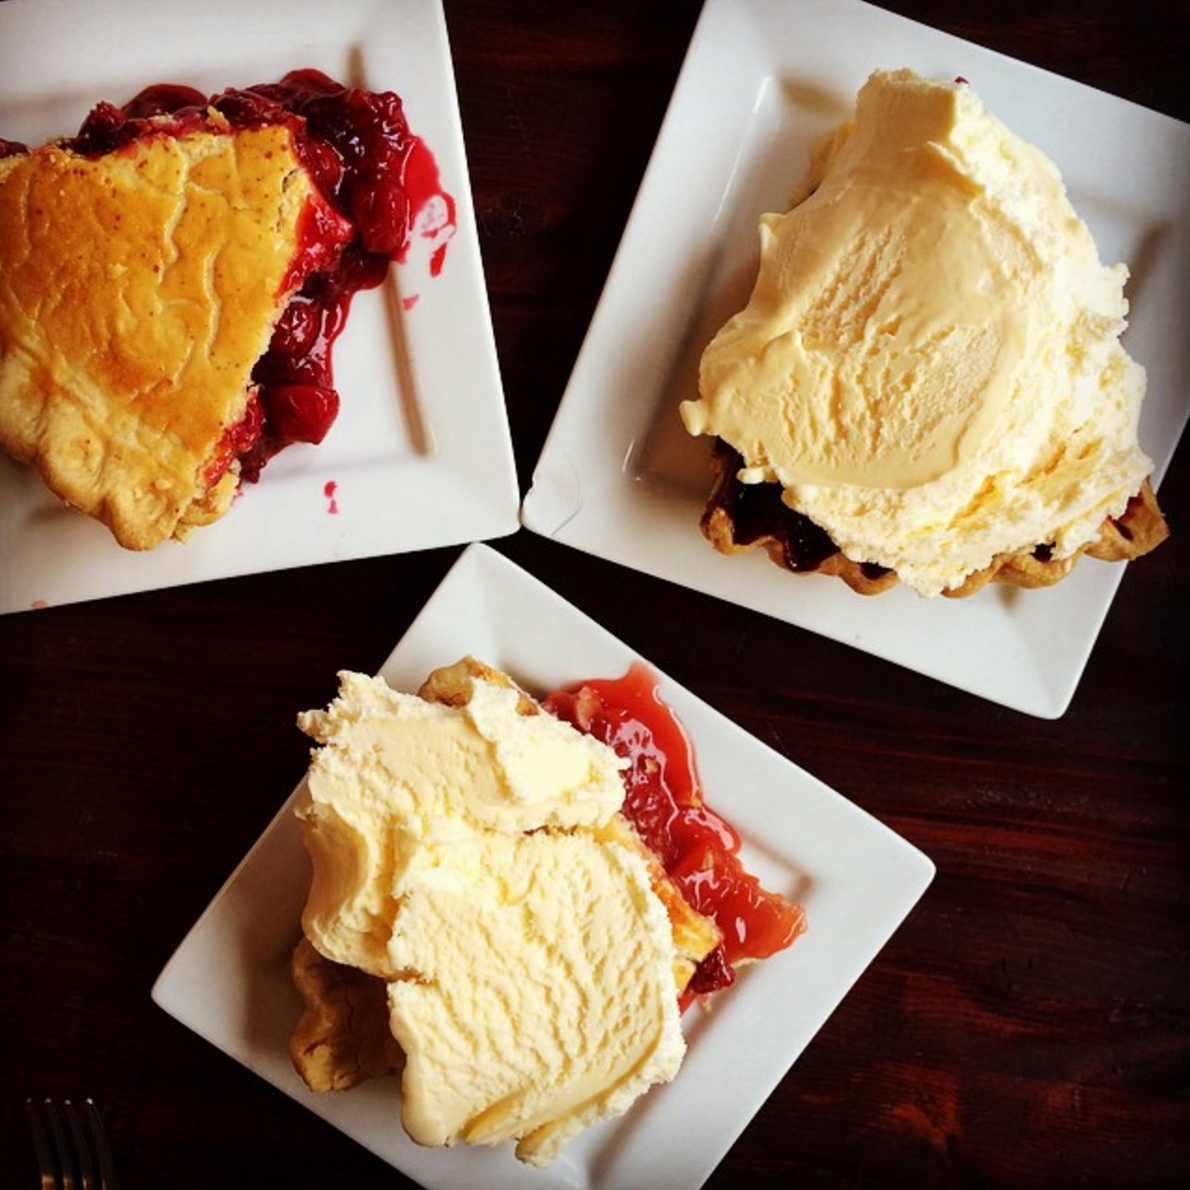 The Best Place To Get Pie In Every State, According To Yelp